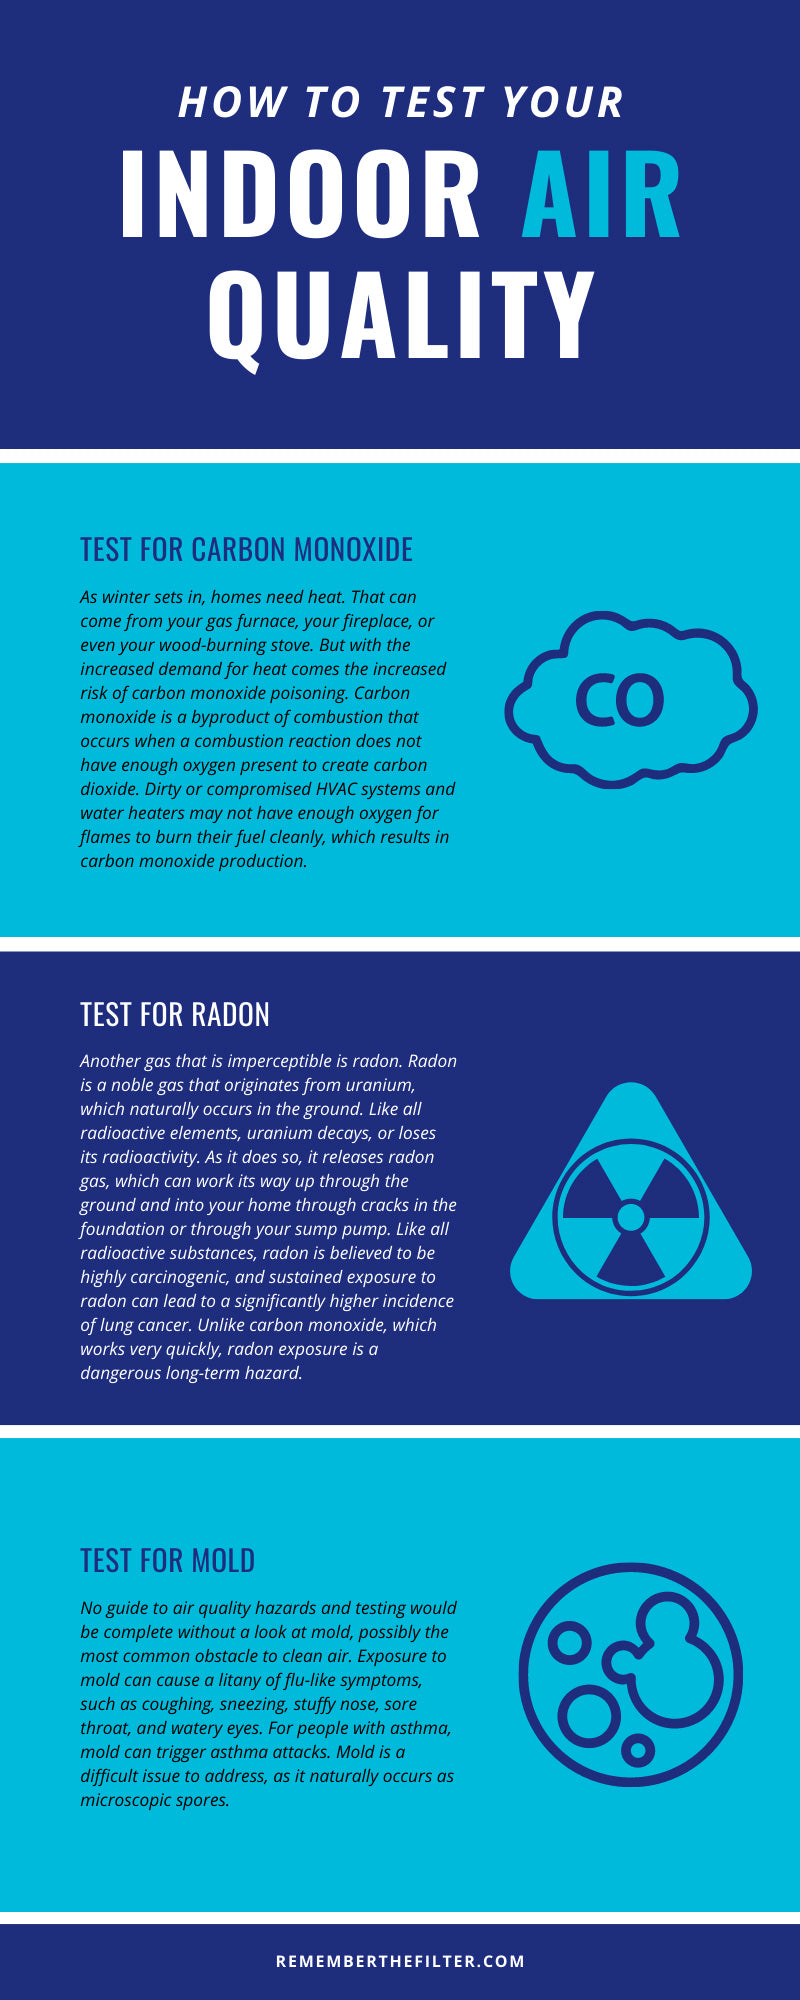 How To Test Your Indoor Air Quality